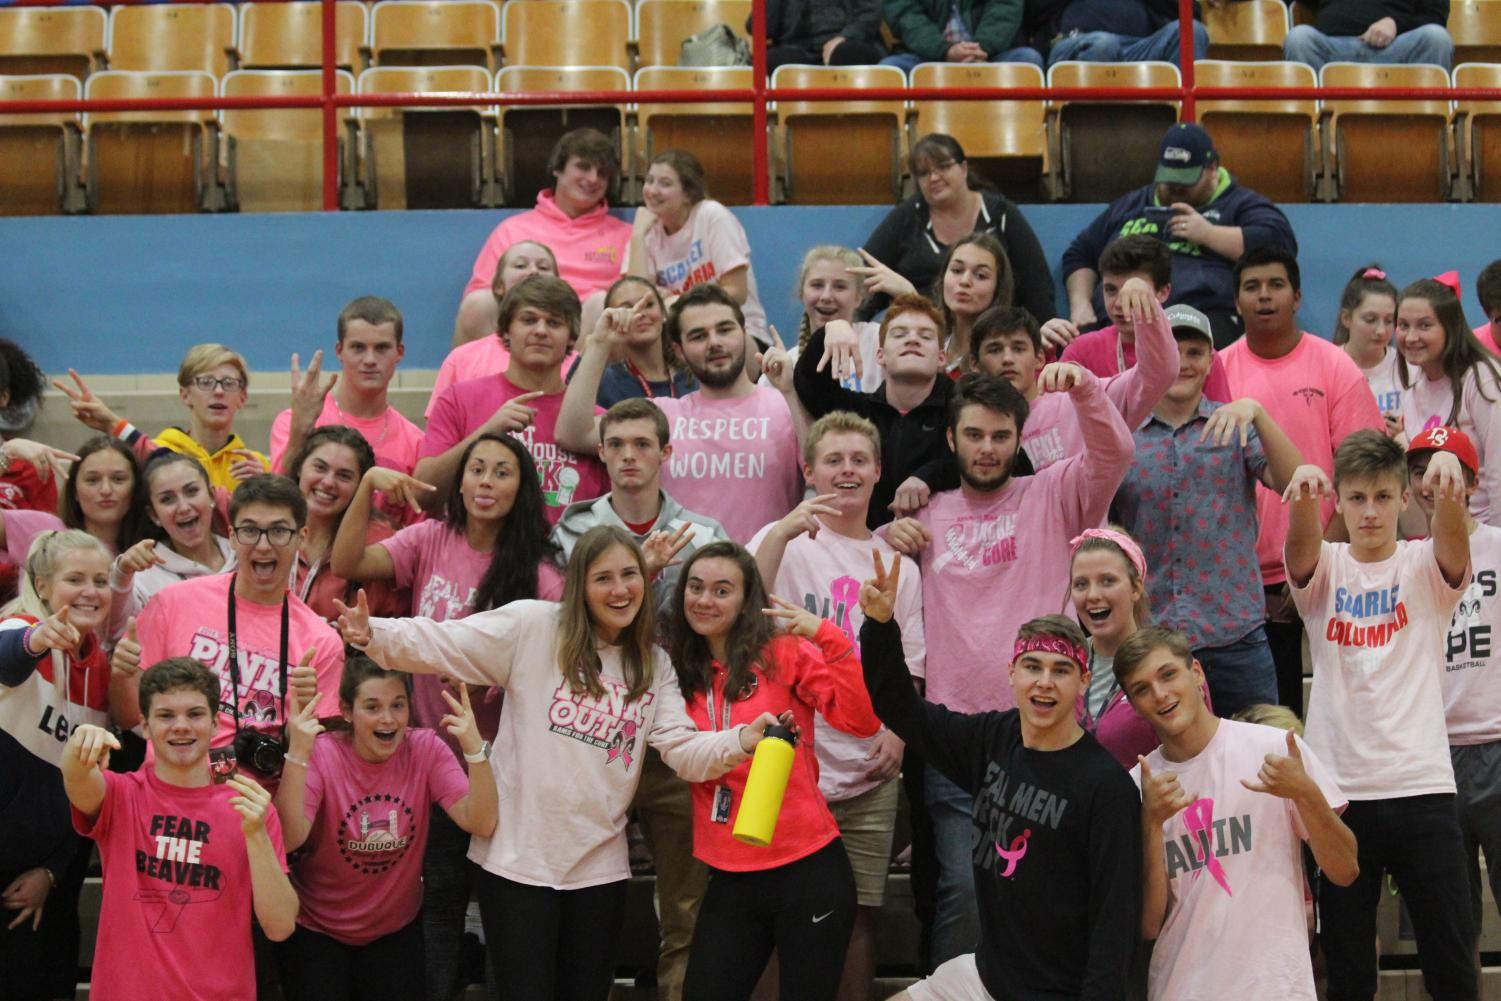 The Nasty Nation brings out their pink at the annual Pink Out volleyball game  Due to the rain, photos of the Pink Out football game were unavailable.